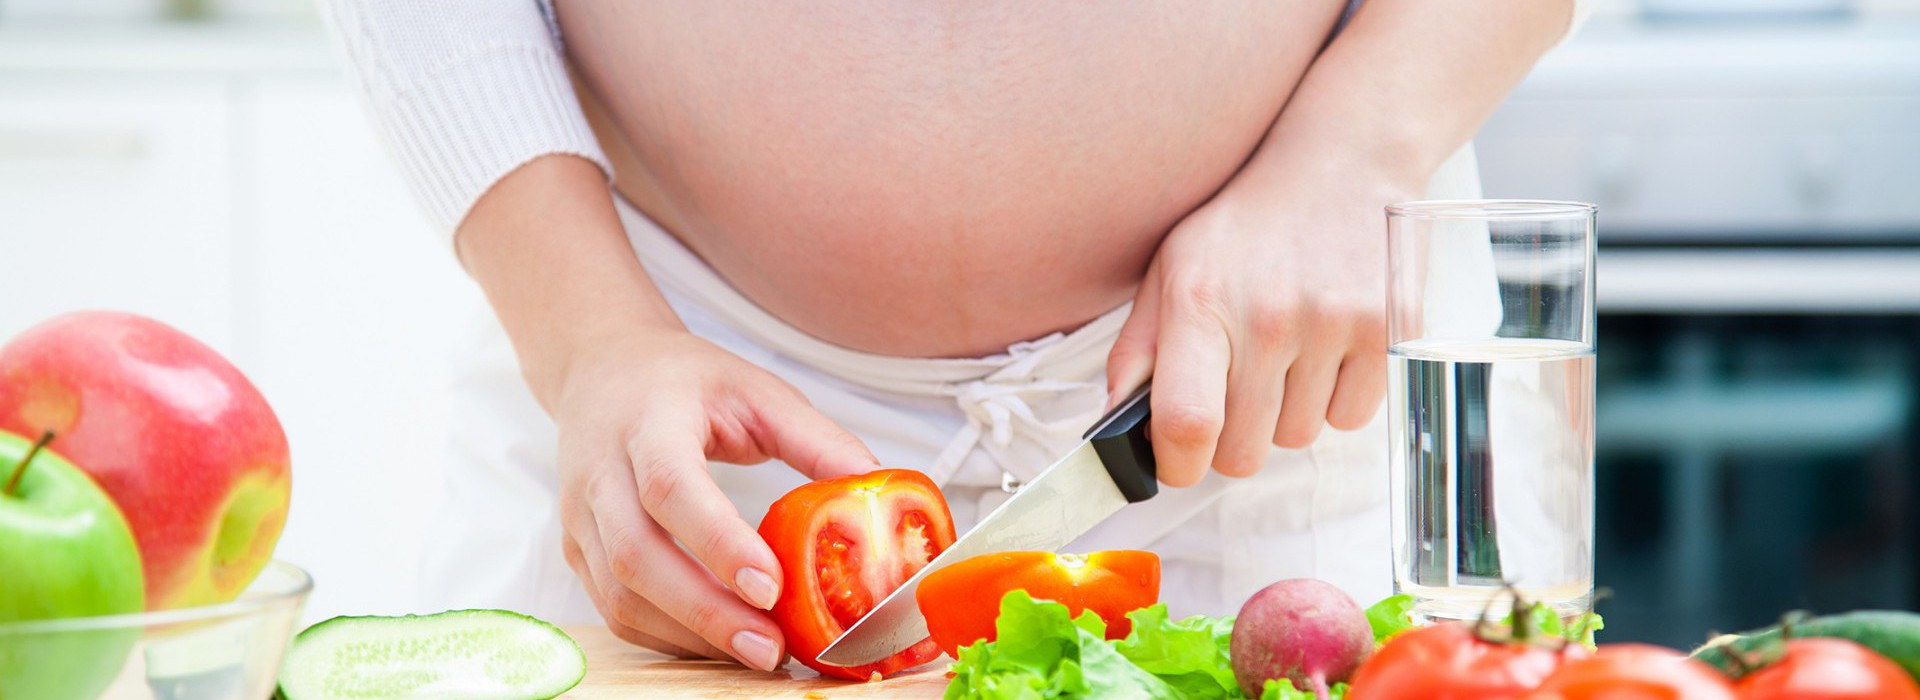 pregnancy and cooking